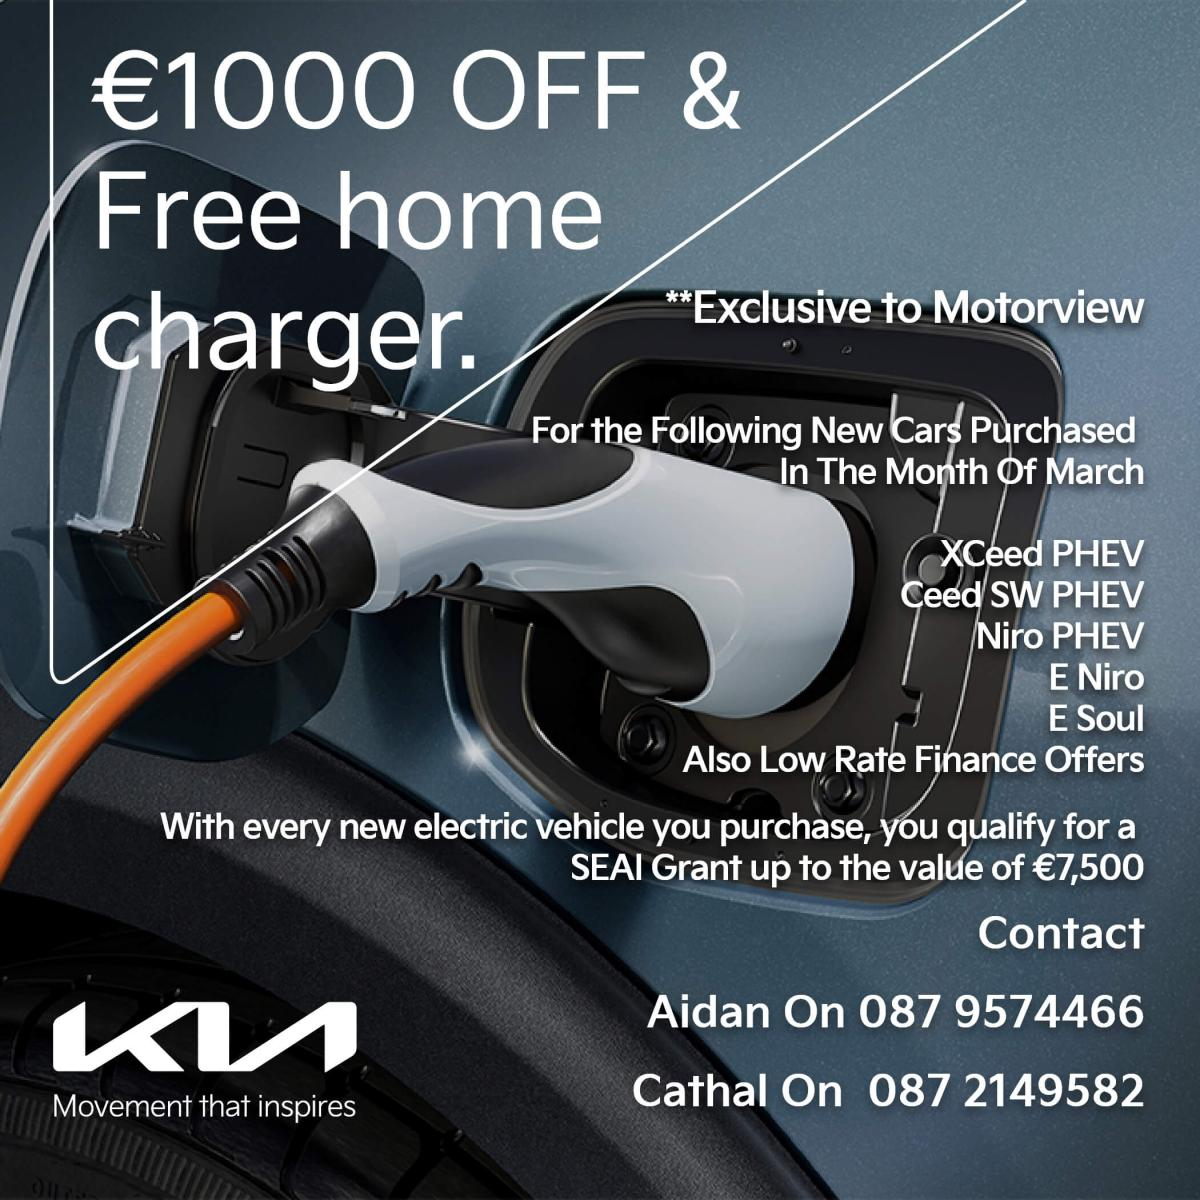 Exclusive Free Home Charger Offer